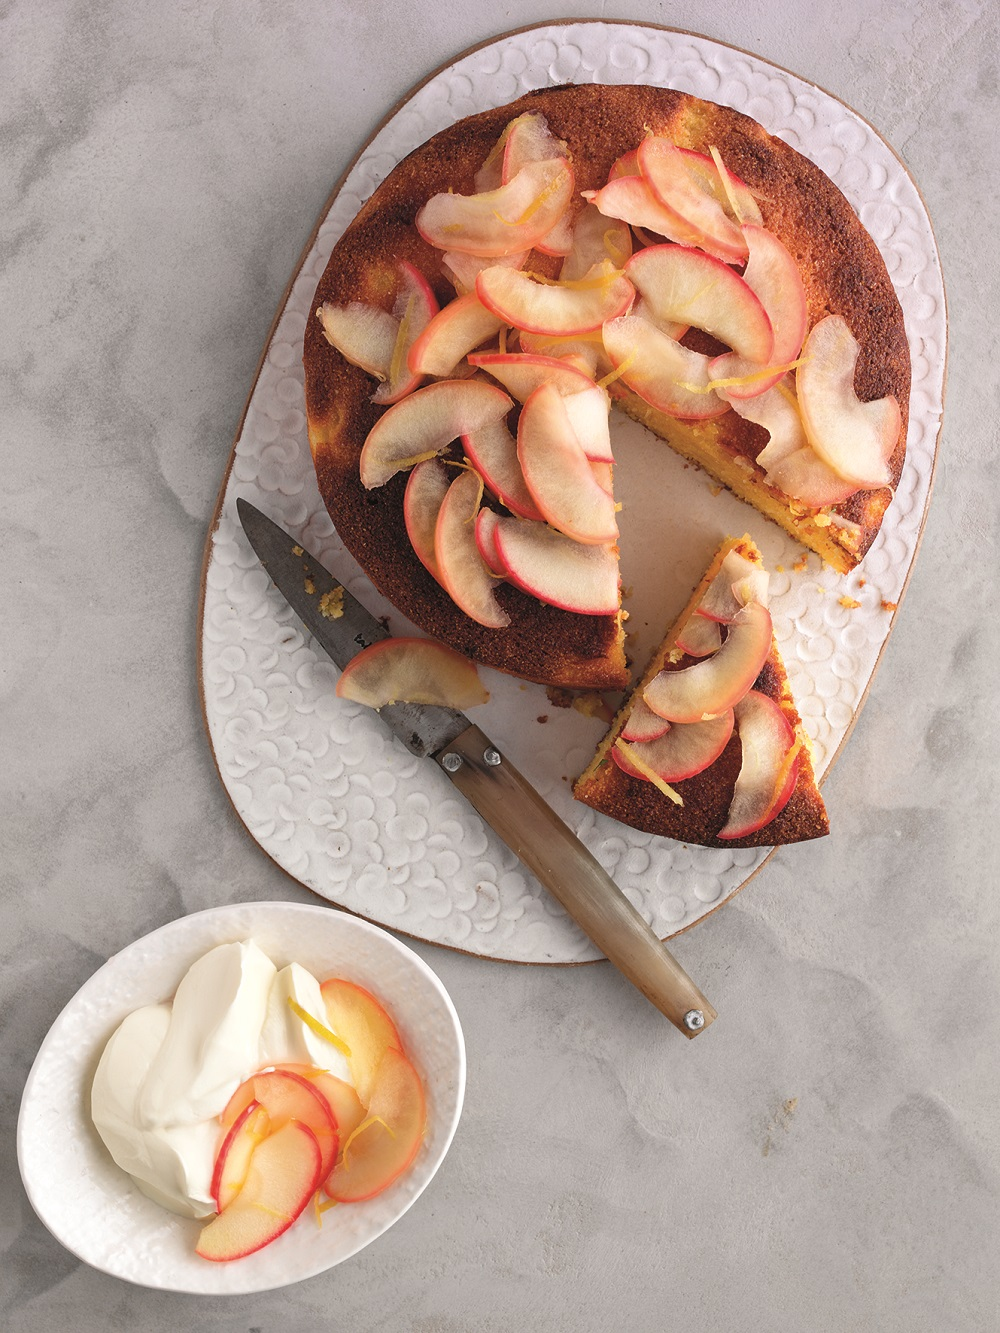 South African Pink Lady Cornmeal Cake